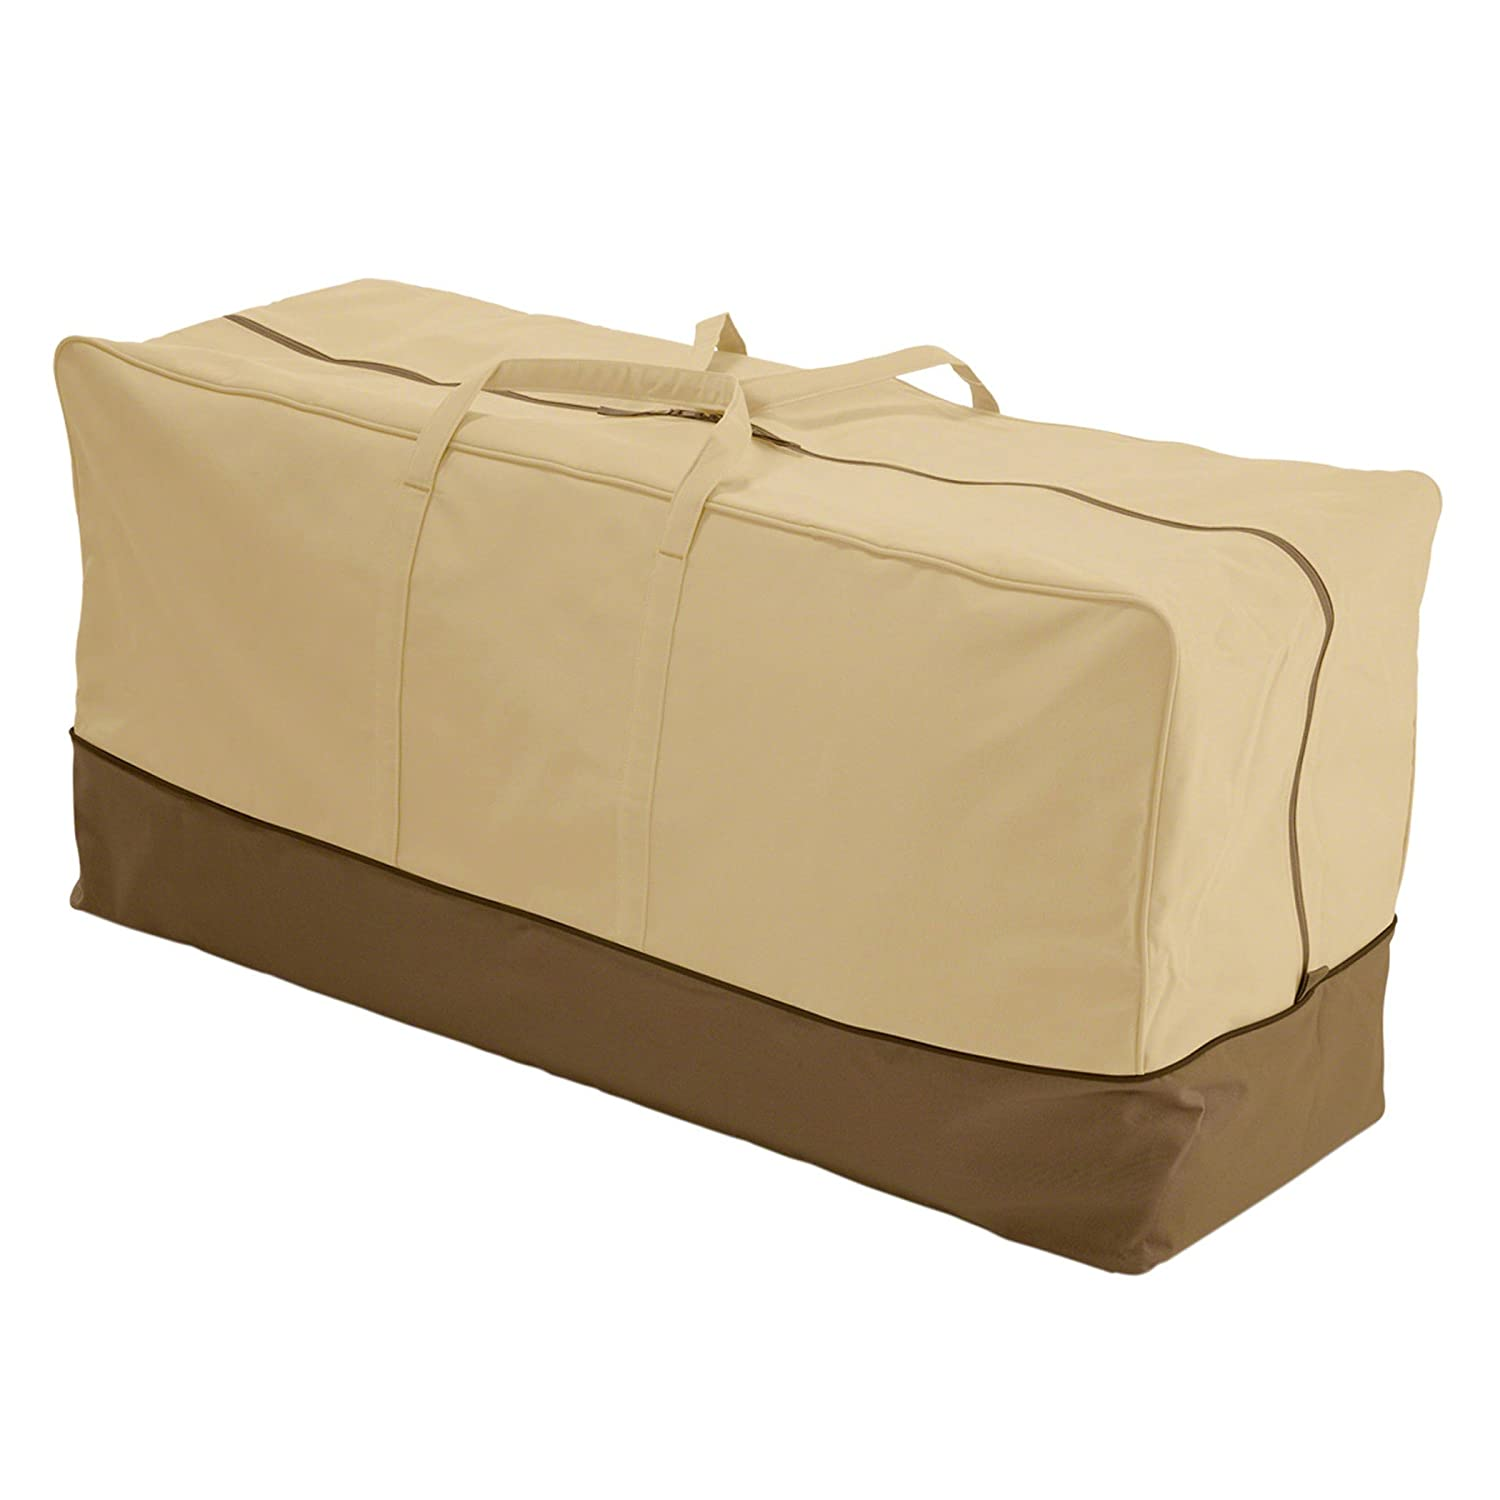 Classic Accessories Veranda Patio Cushion & Cover Storage Bag, Standard